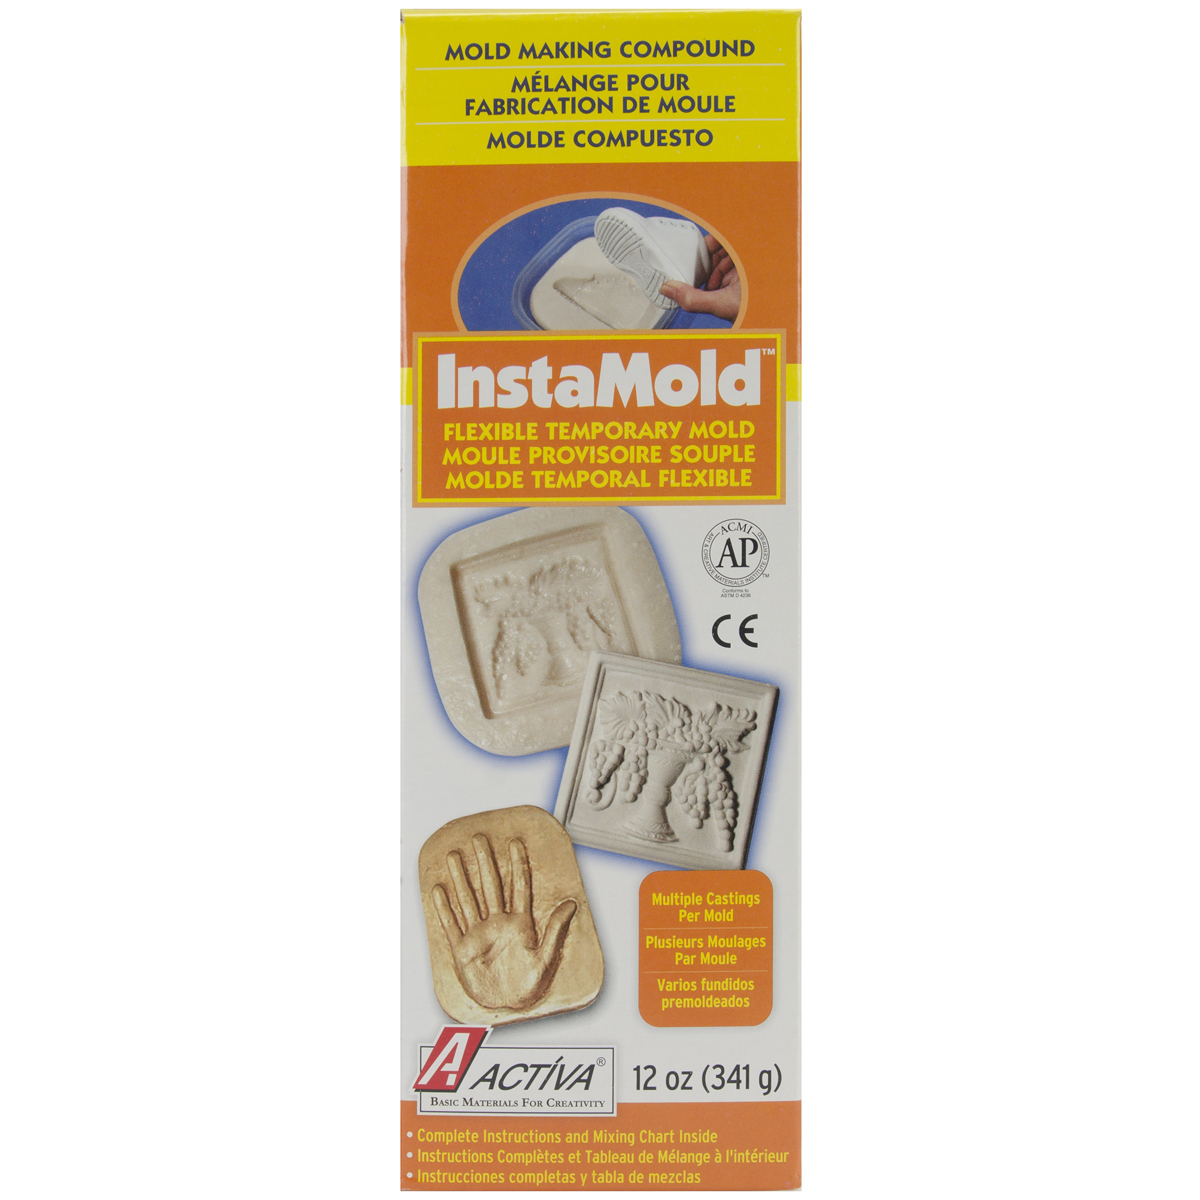 Instamold Compound 12oz